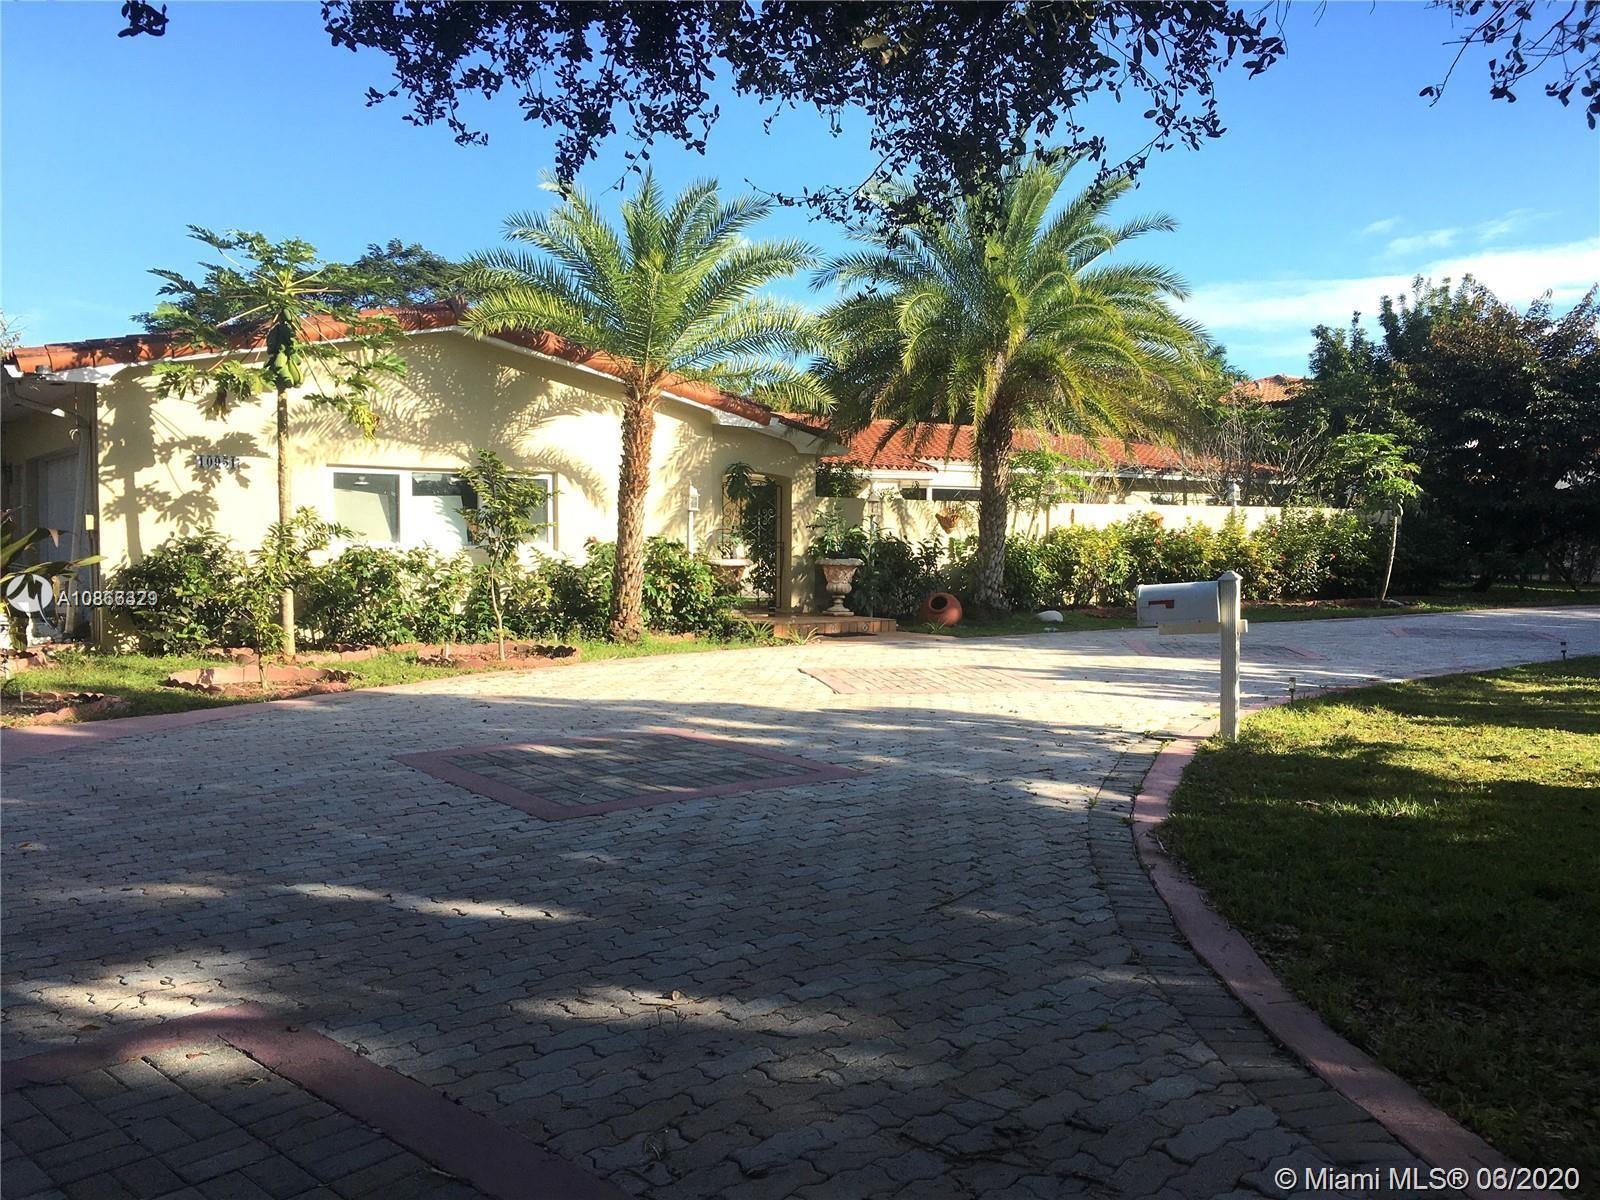 10951 SW 60 Ave, Pinecrest, Florida 33156, 6 Bedrooms Bedrooms, ,5 BathroomsBathrooms,Residential,For Sale,10951 SW 60 Ave,A10866329